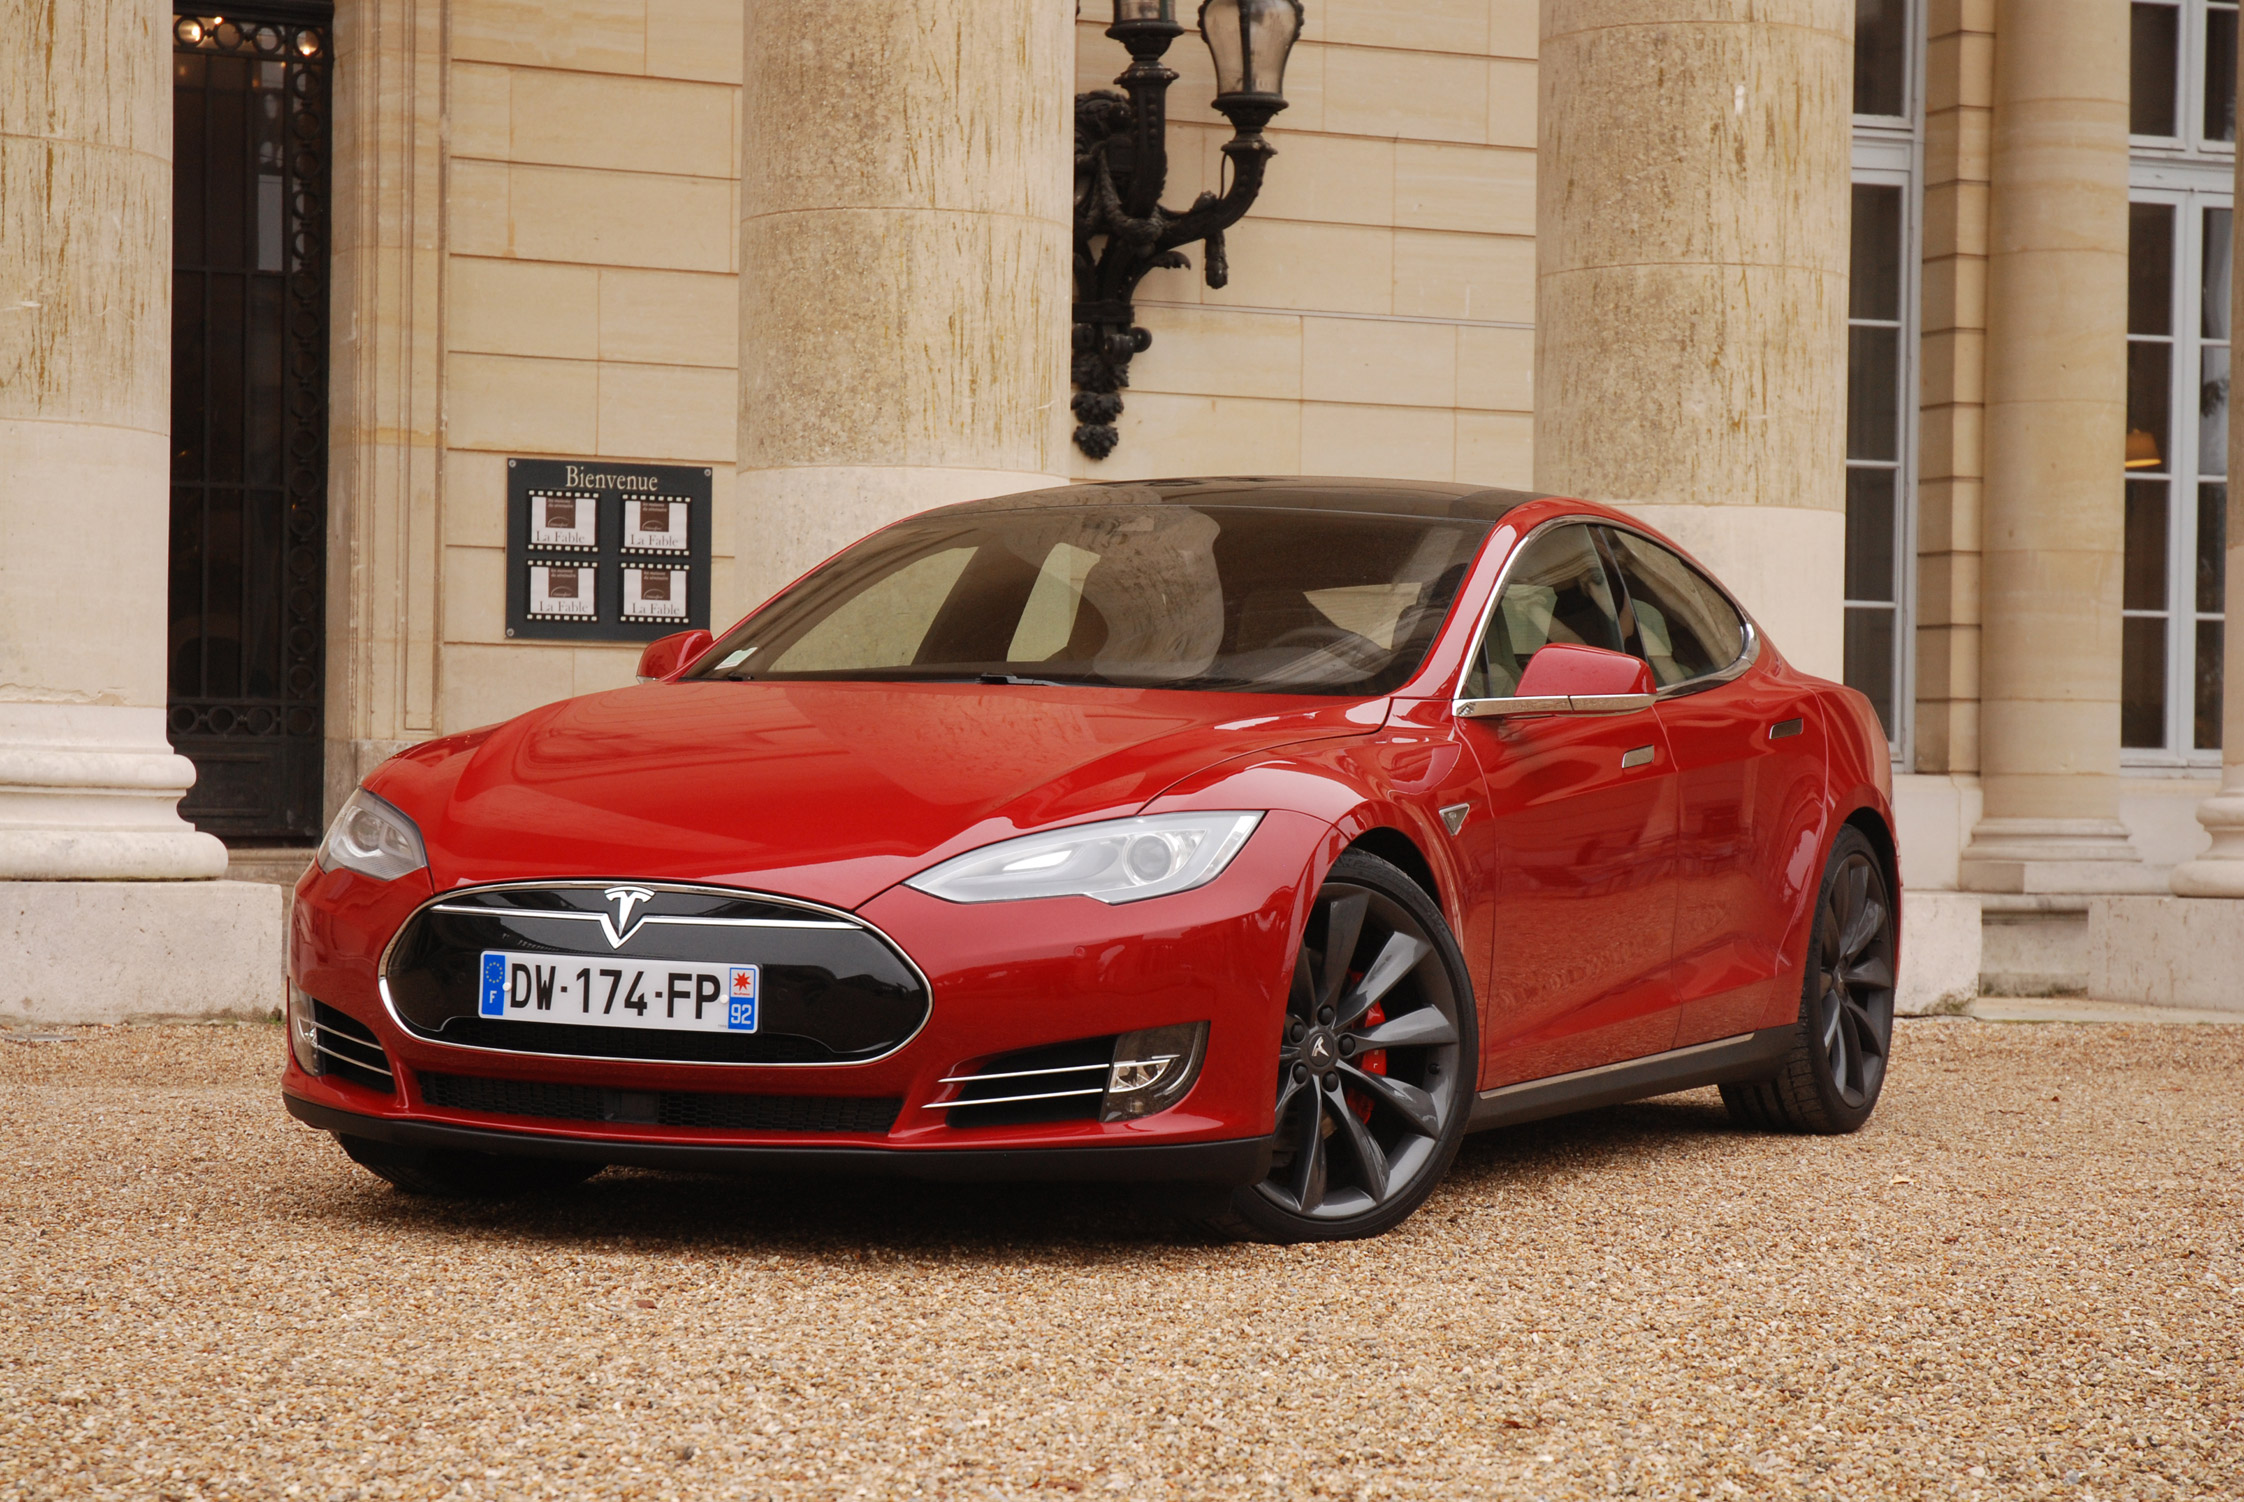 essai tesla model s p90d motorlegend. Black Bedroom Furniture Sets. Home Design Ideas